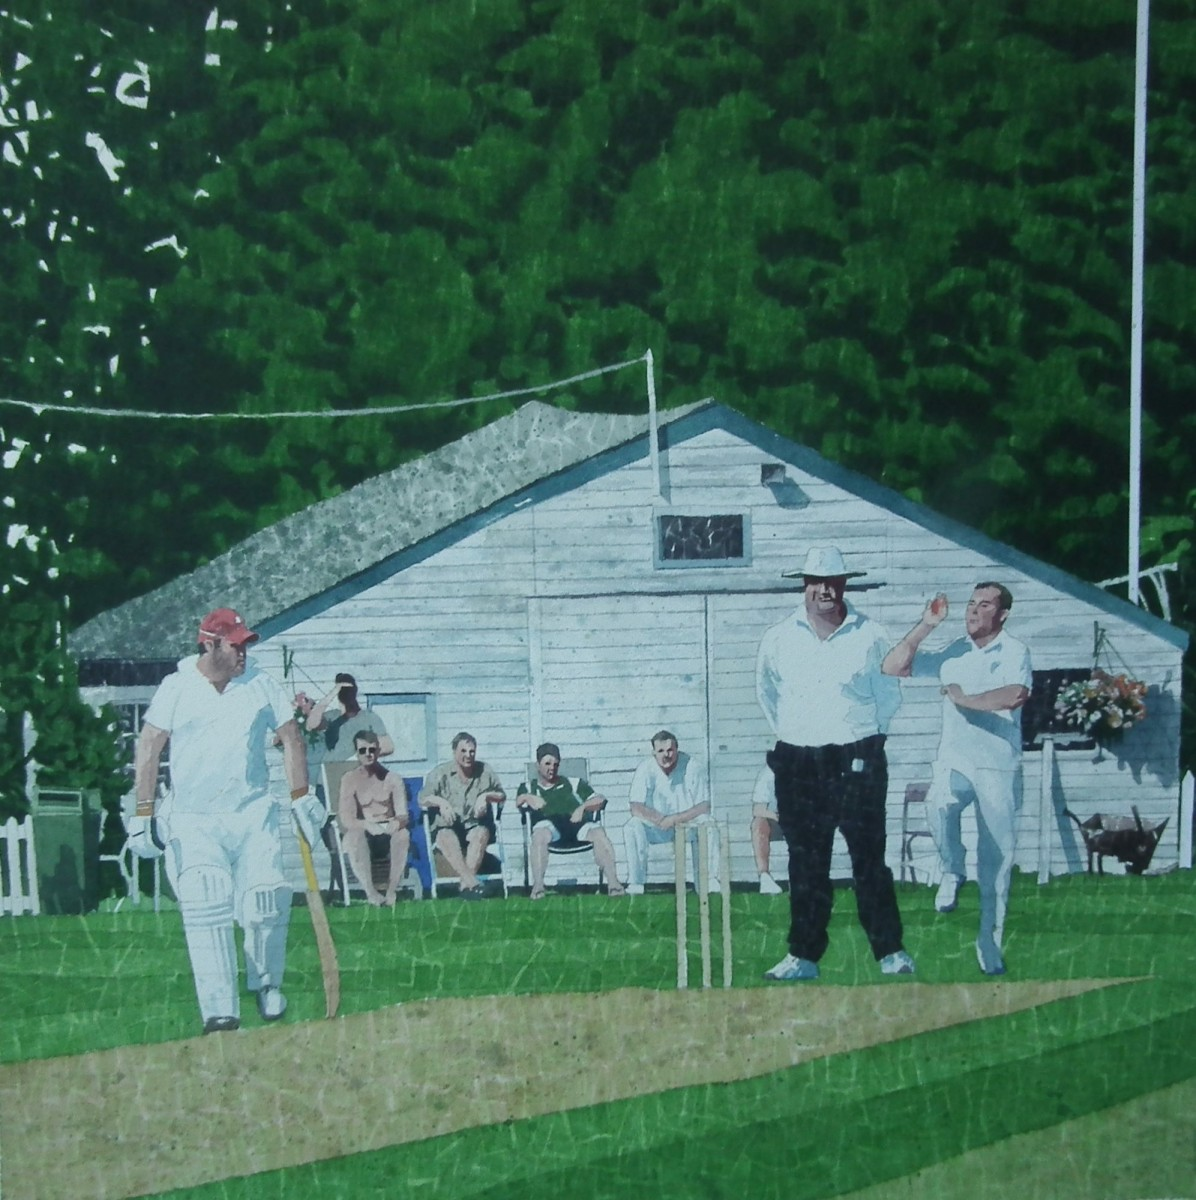 "a village cricket match essay A village cricket match a g macdonald's 'a village cricket match"" is an excerpt from his satirical work – 'england, their england' set against a backdrop of an english village."